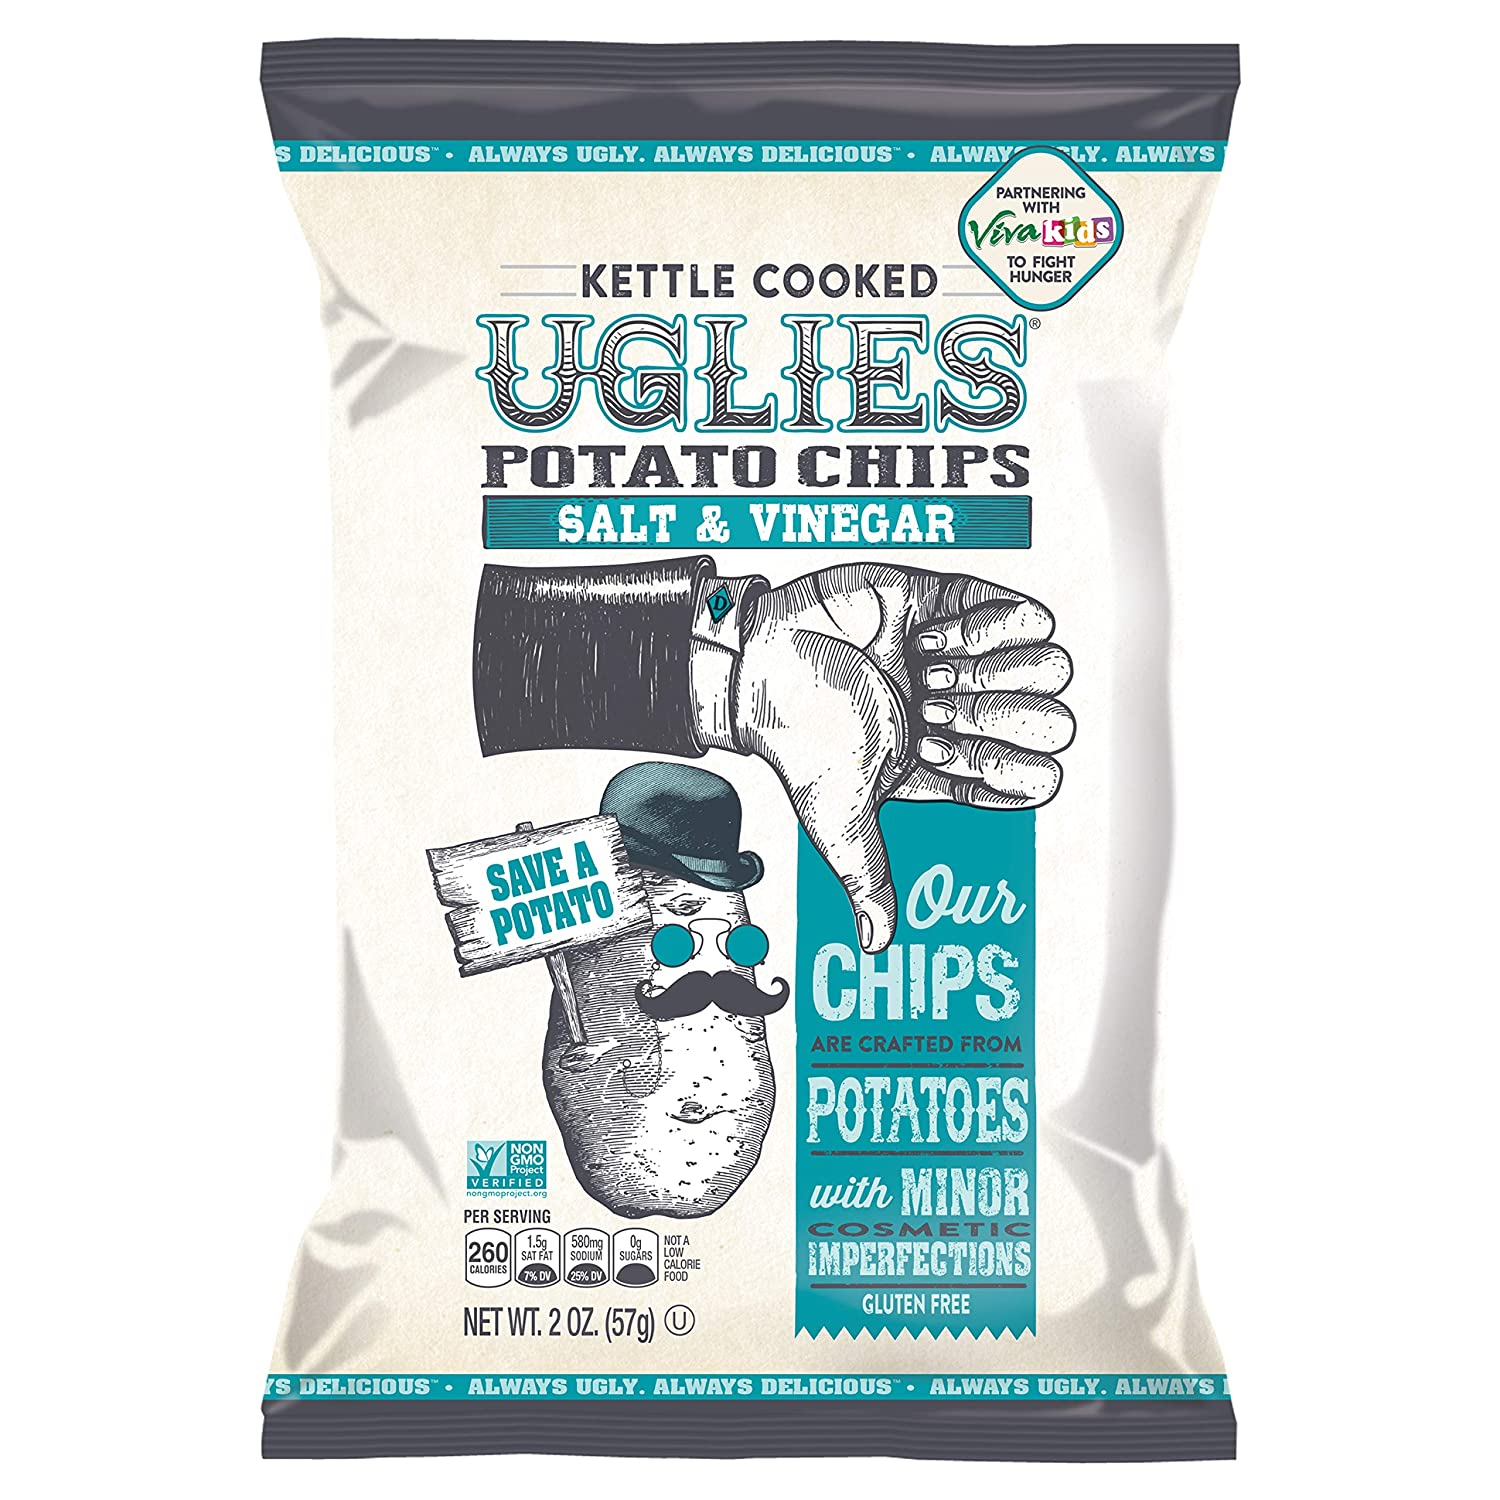 UGLIES 12 Pack Kettle Cooked Salt & Vinegar Potato Chips - Gluten Free, Kosher, Non-GMO Office and Kids Snack - Individual Lunch Snack Packs - 2 oz Bags